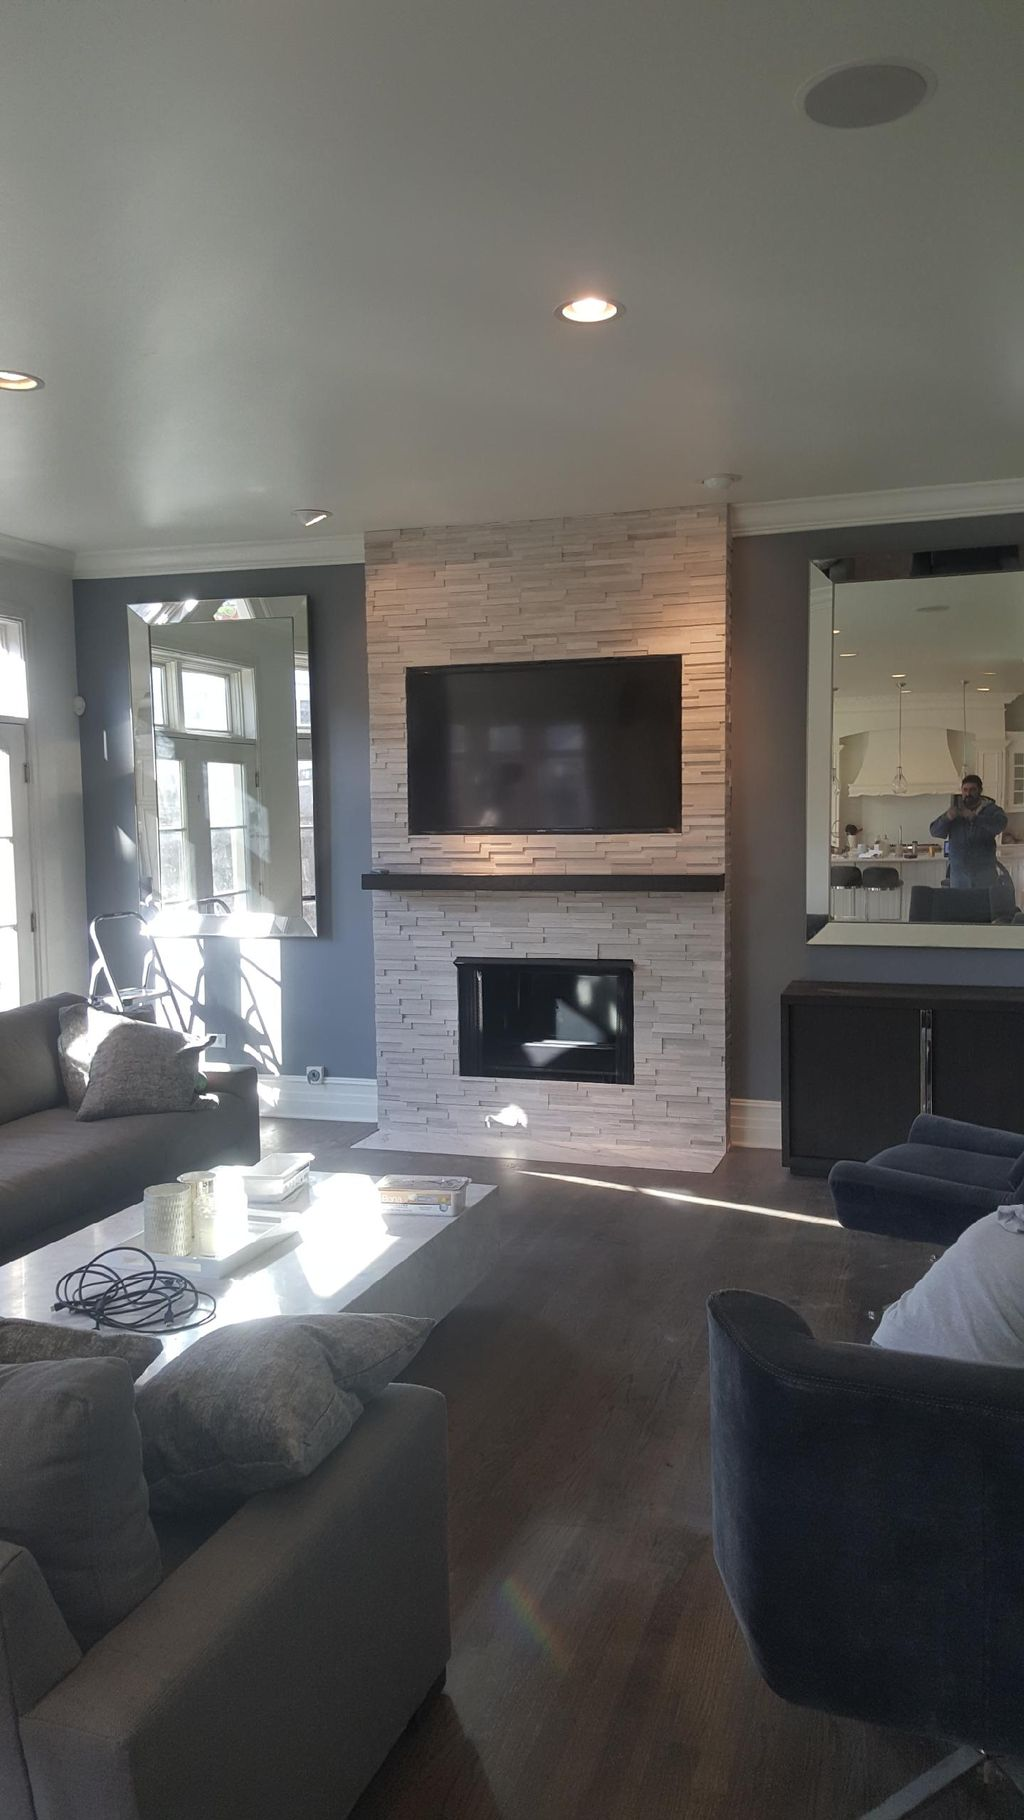 Entire house remodel